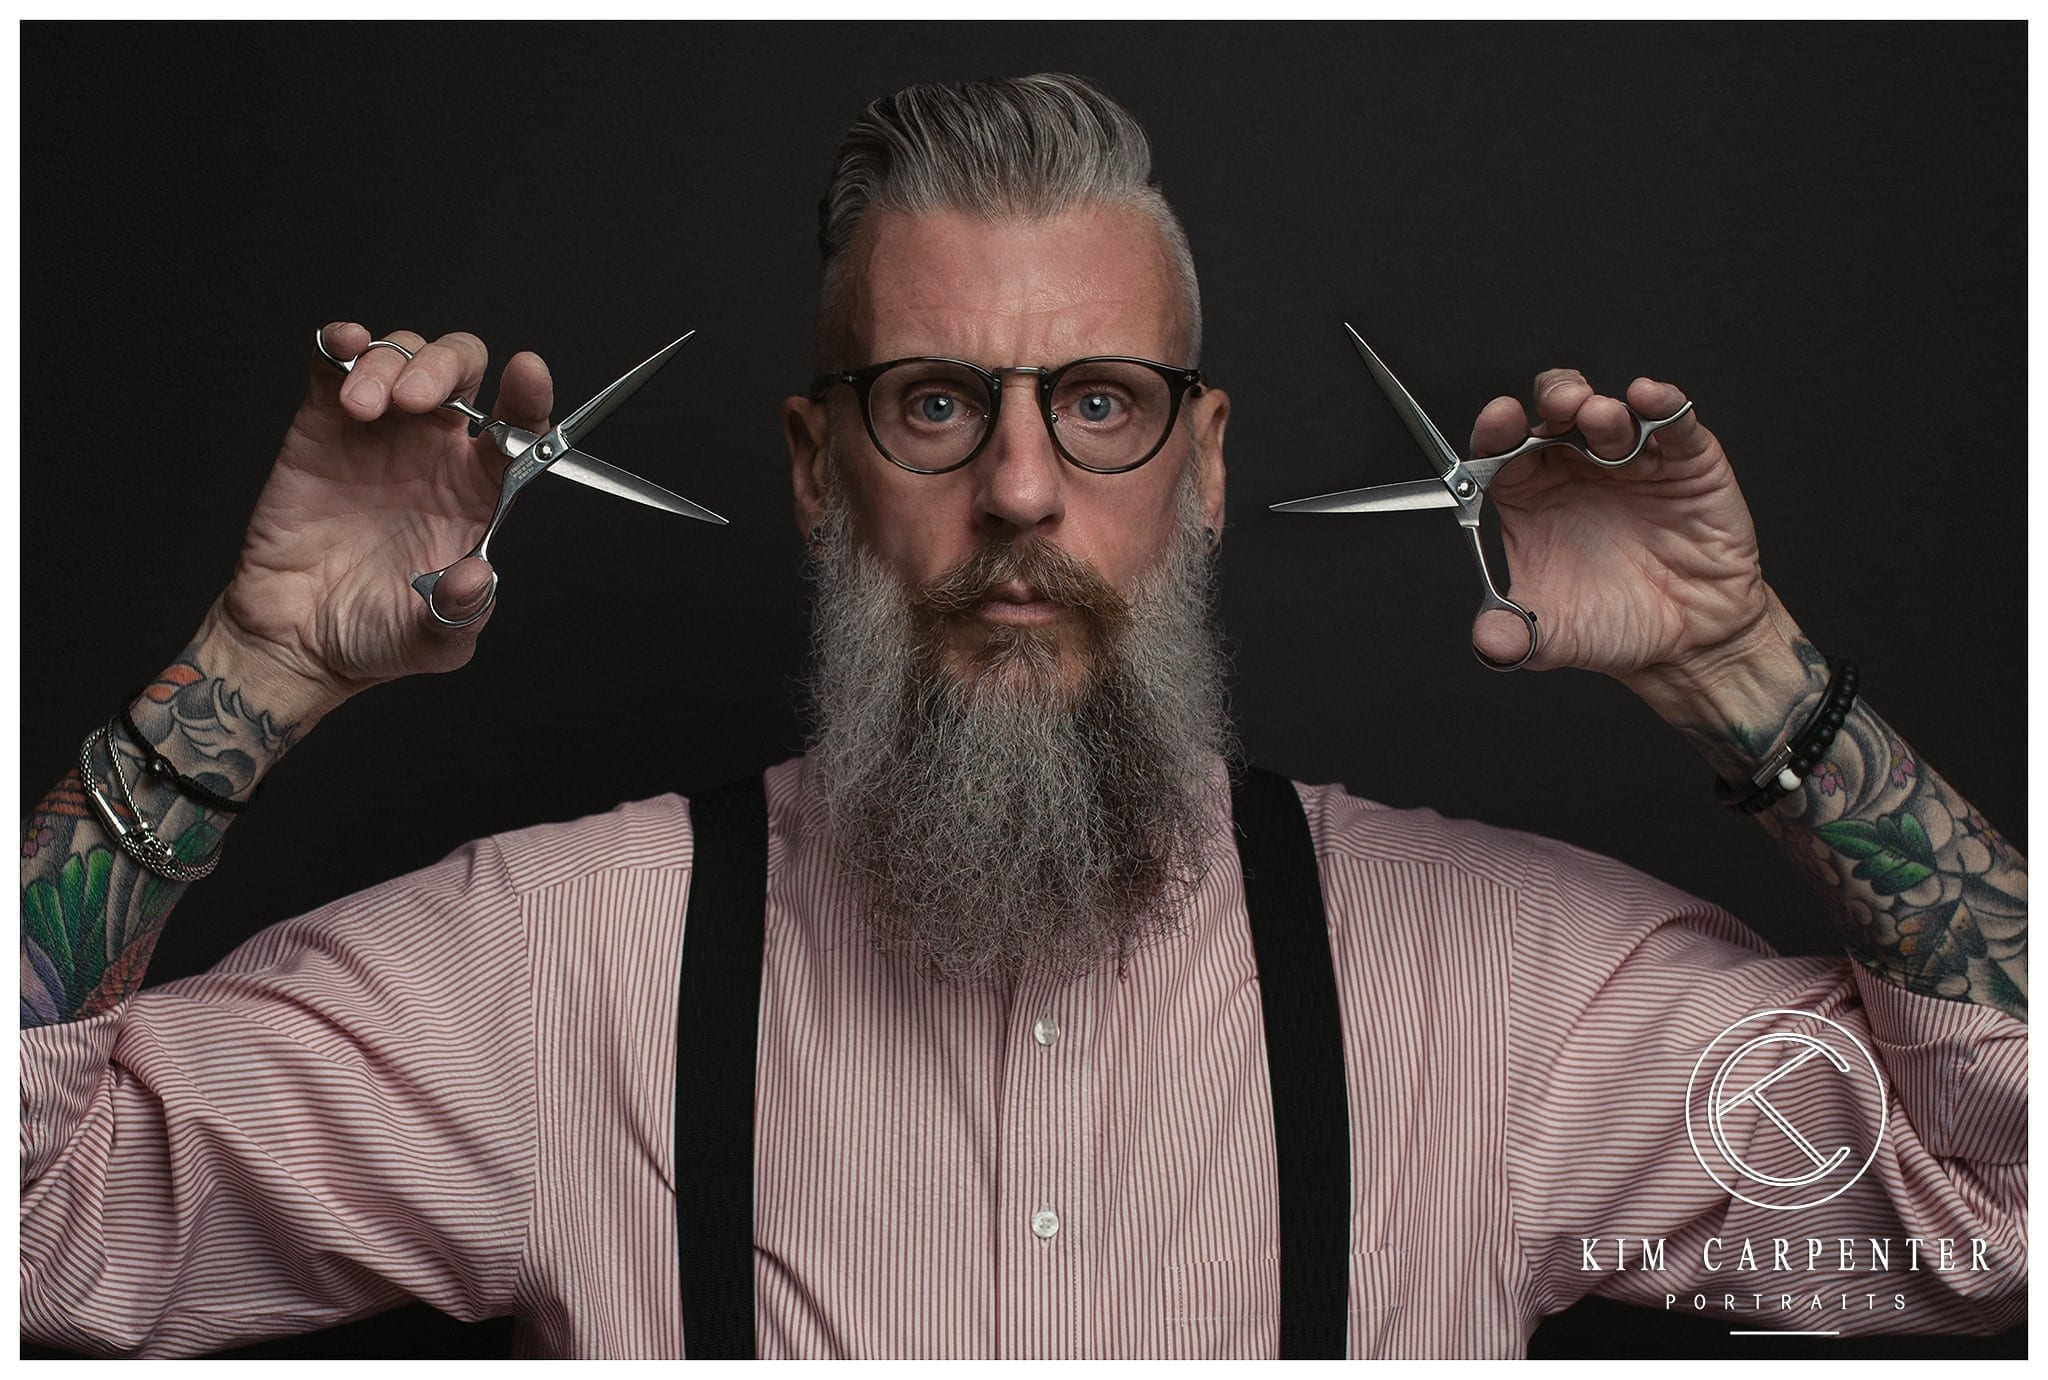 Man holding two pairs of hair cutting scissors.